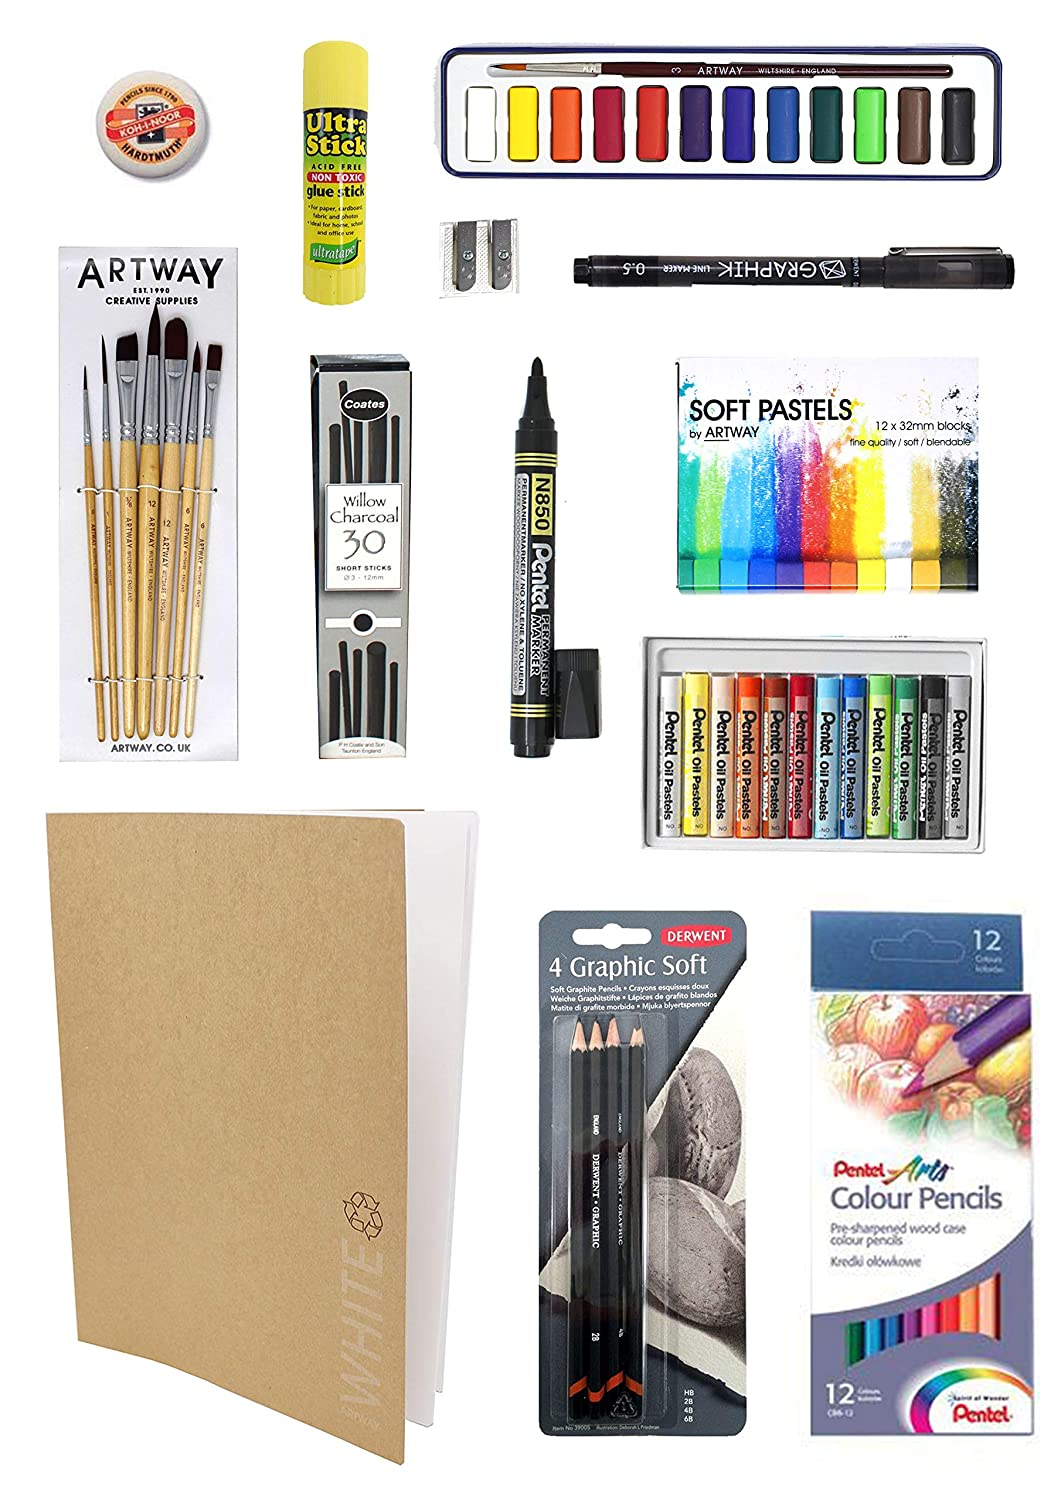 ArtWay A3 Art Kit A3 Ideal for GCSE and A-Level 14 Items Including Pencils Brushes Pastels Paints and More